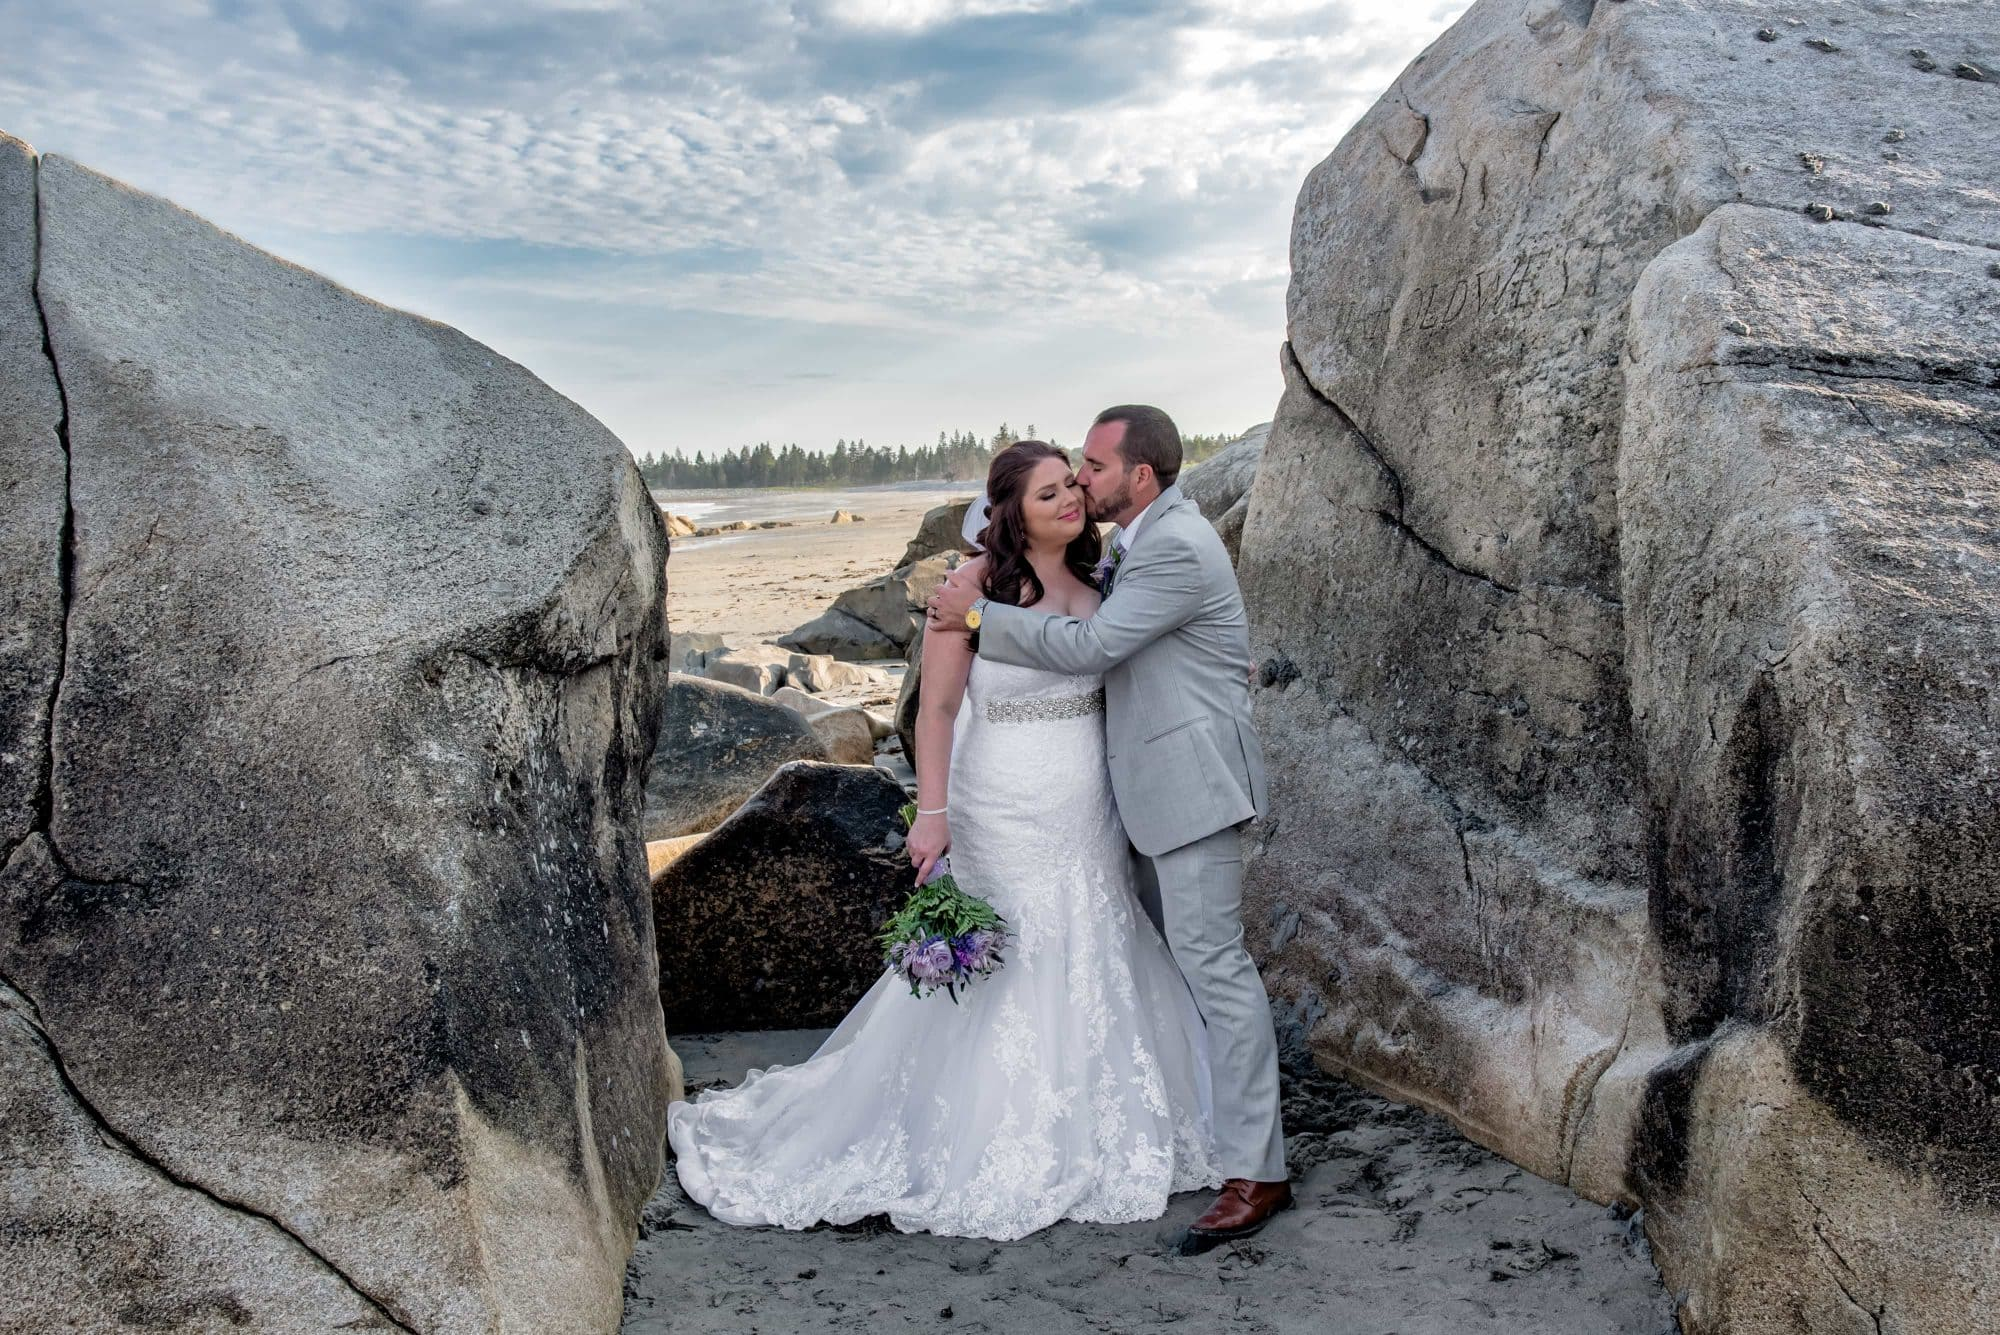 A candid bride and groom photos done on the beach between the rocks during a White Point wedding.